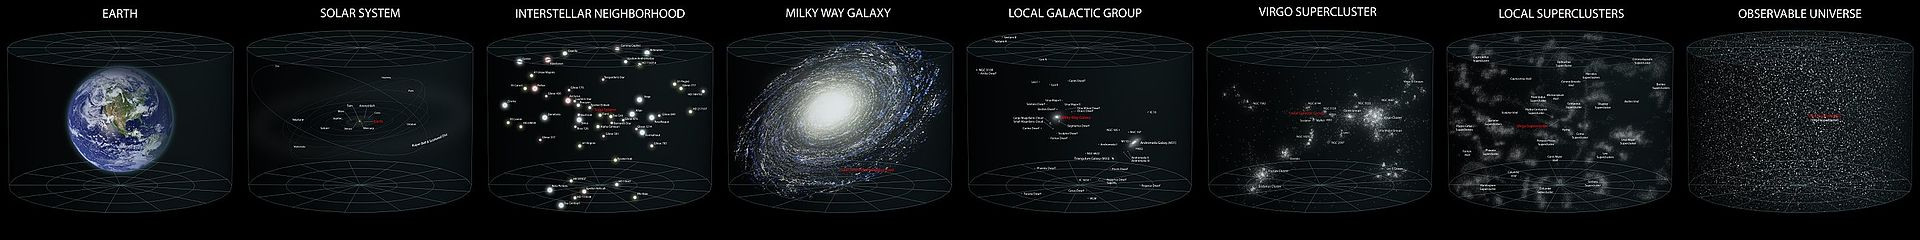 Earths Location in the Universe